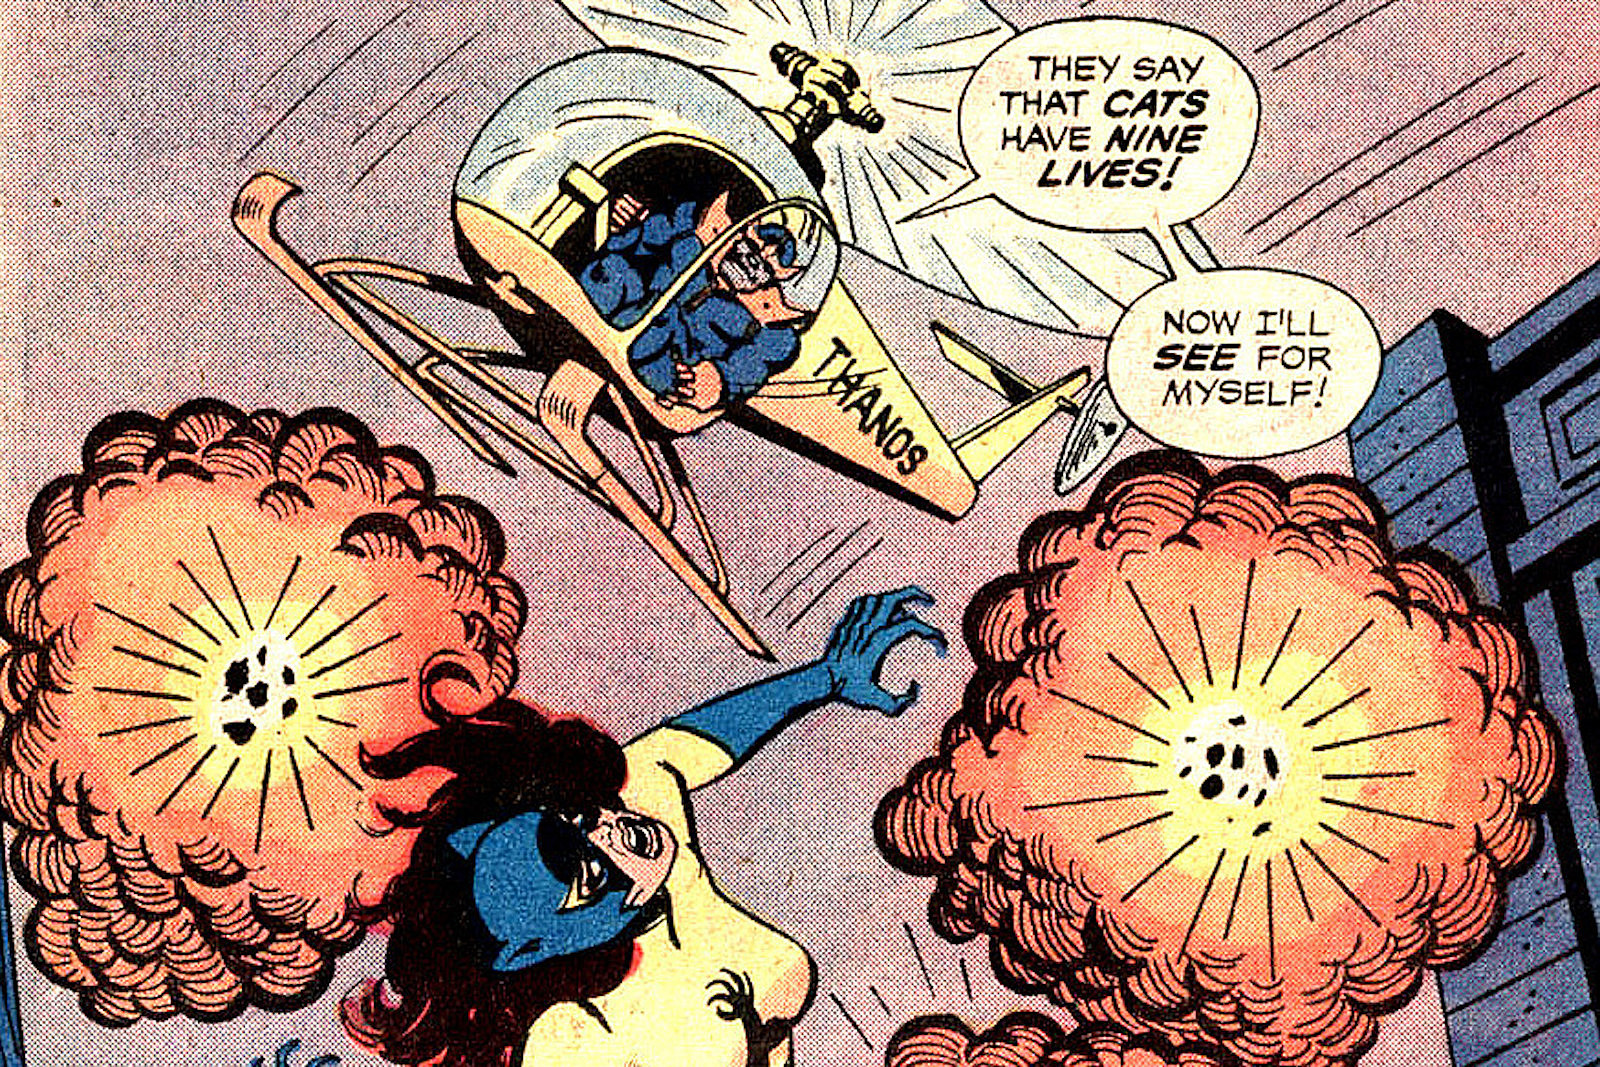 Thanos-Copter from Spidey Super Stories Vol 1 39 001.jpg